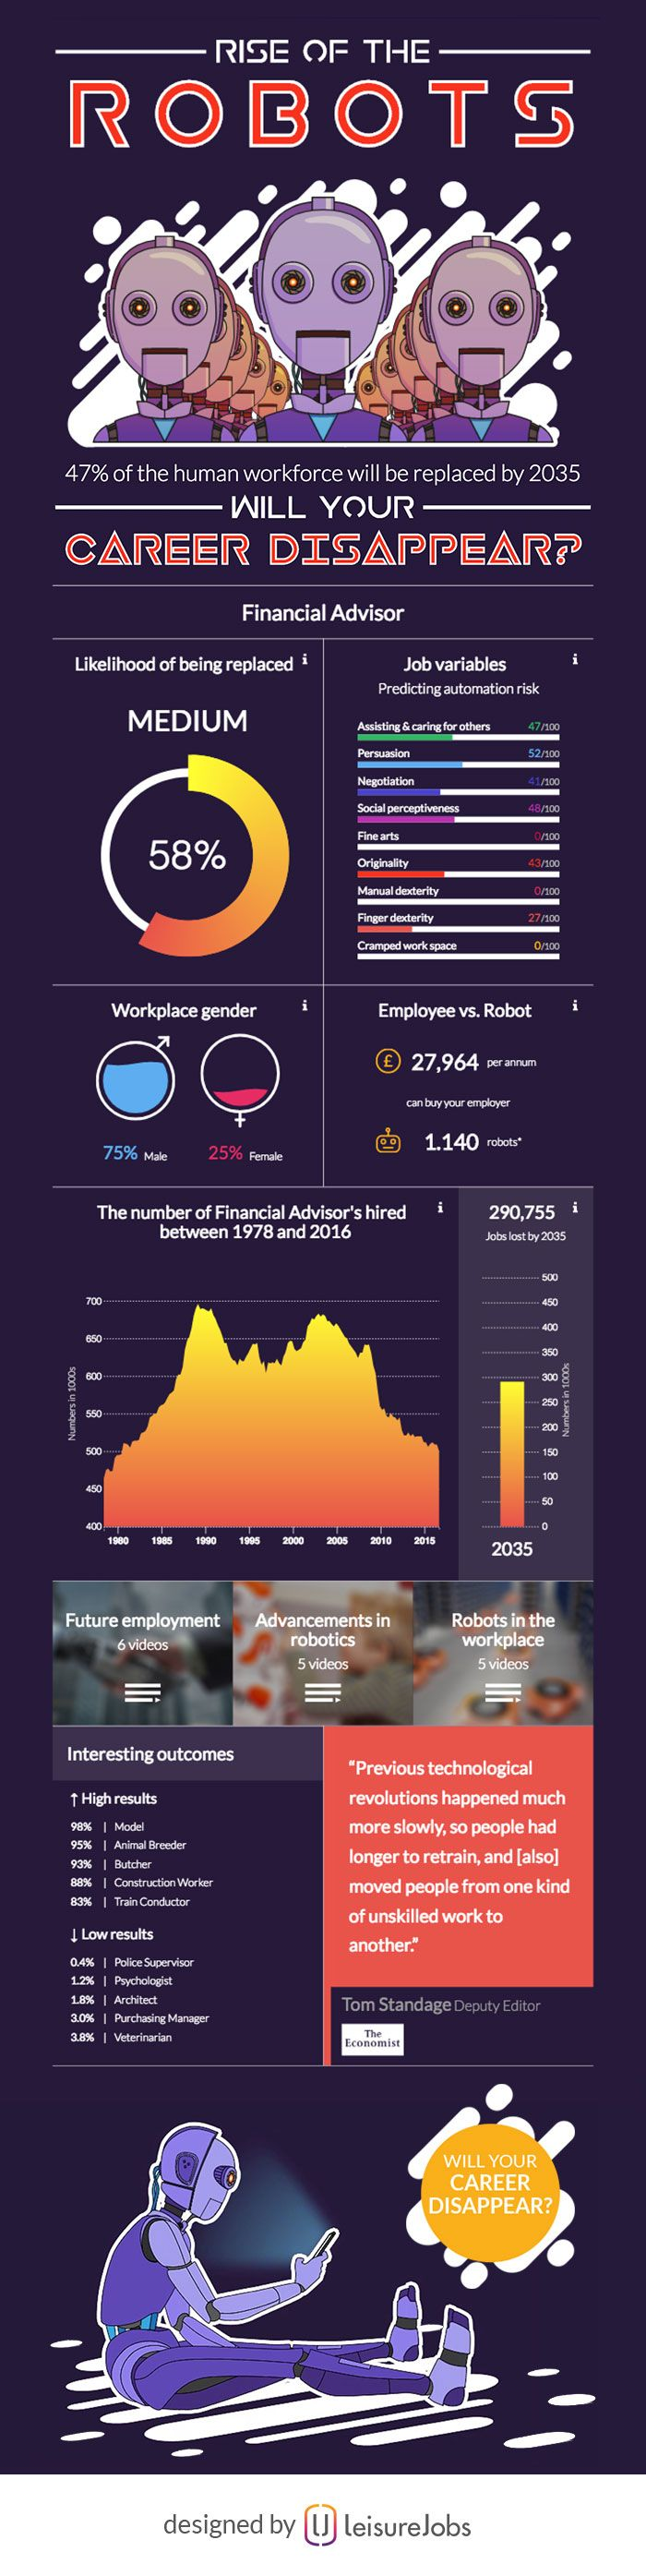 47 Of People Will Be Out Of Work By 2035, Will You Be One